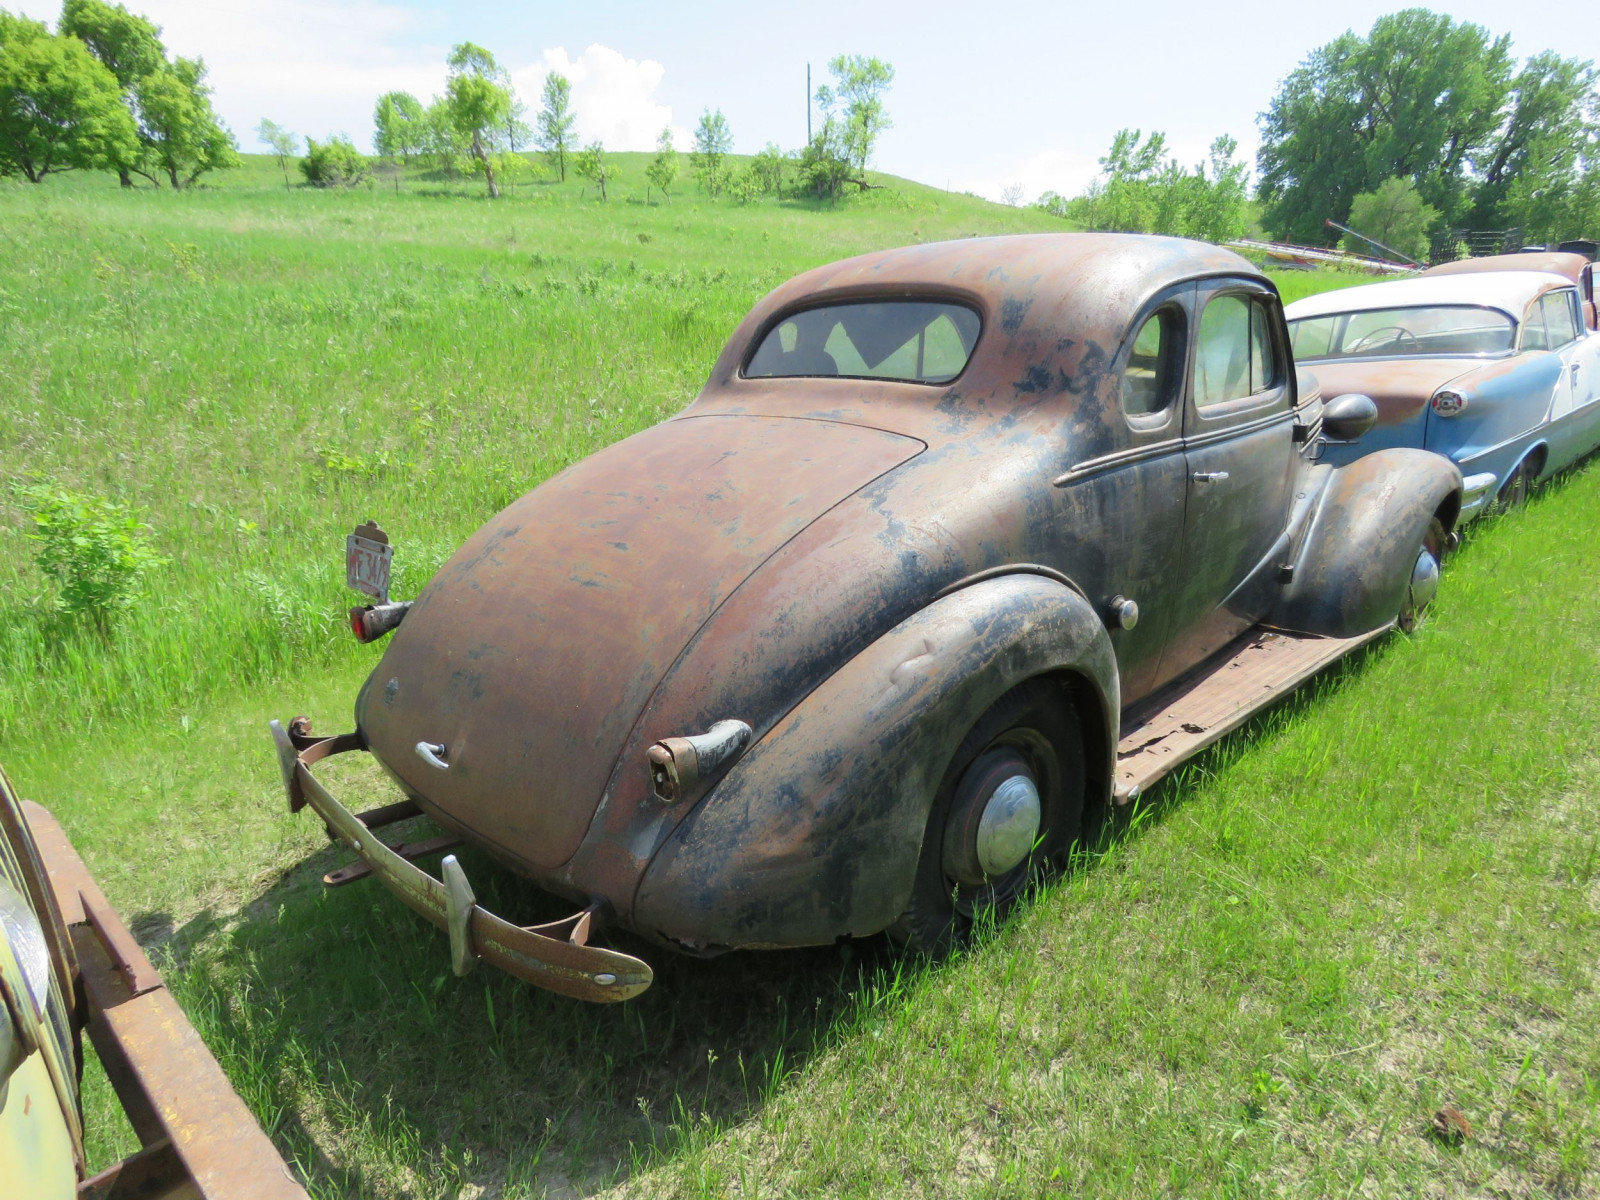 1938 Chevrolet Master Deluxe Coupe 21HA12 15228 - Image 7